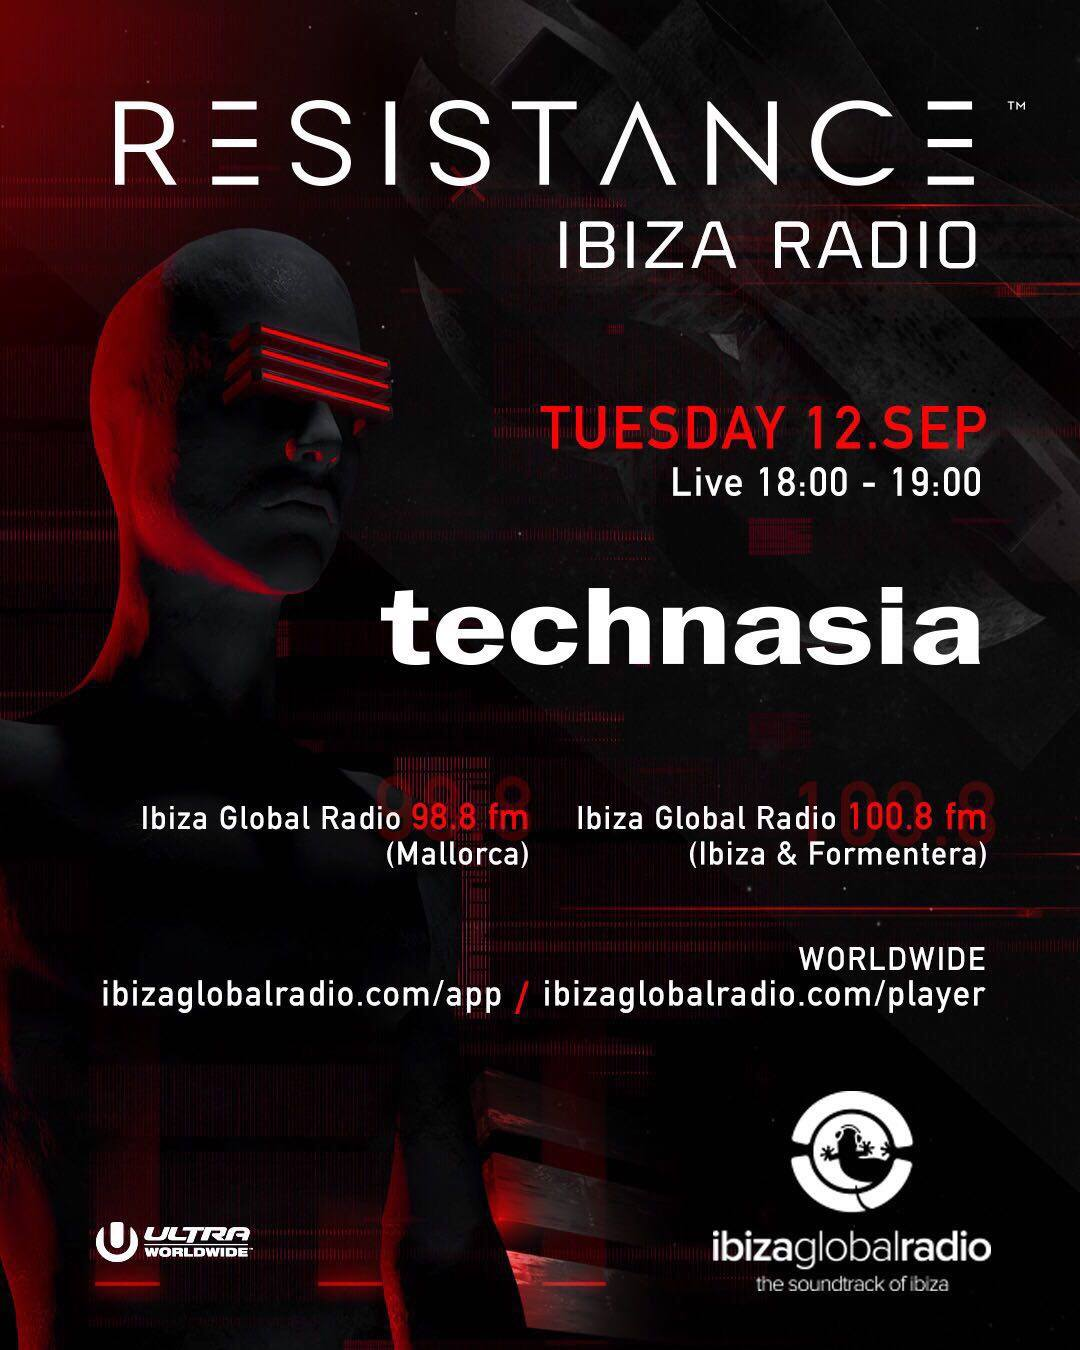 download → Sasha & Technasia - Resistance Radioshow on Ibiza Global Radio - 12-Sep-2017